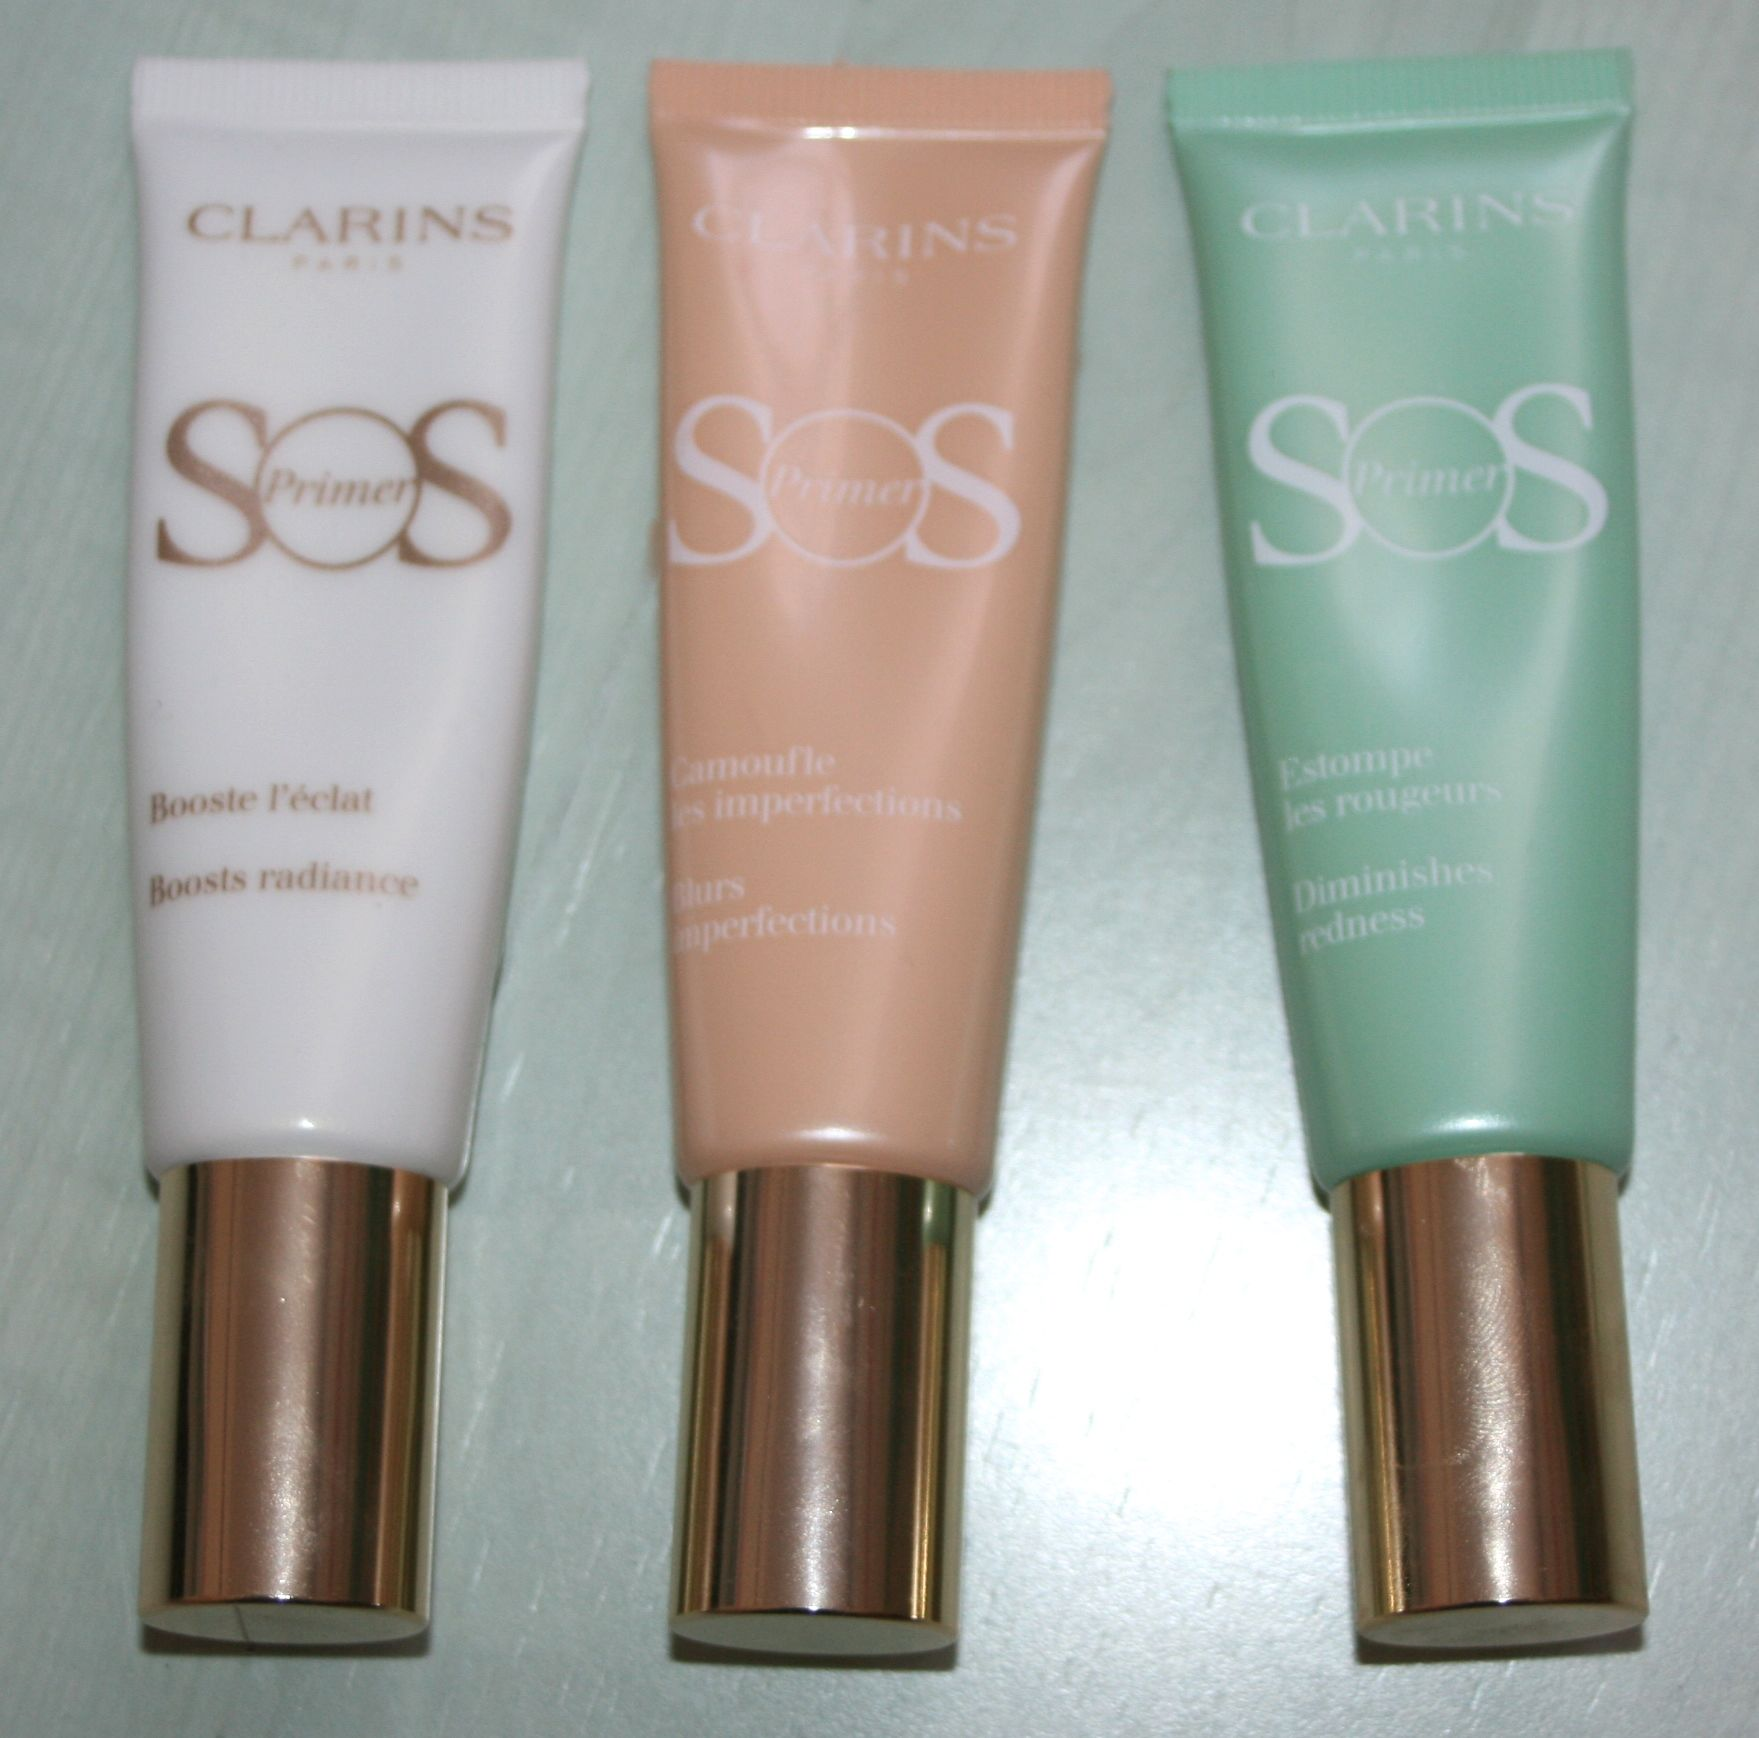 primers SOS Clarins